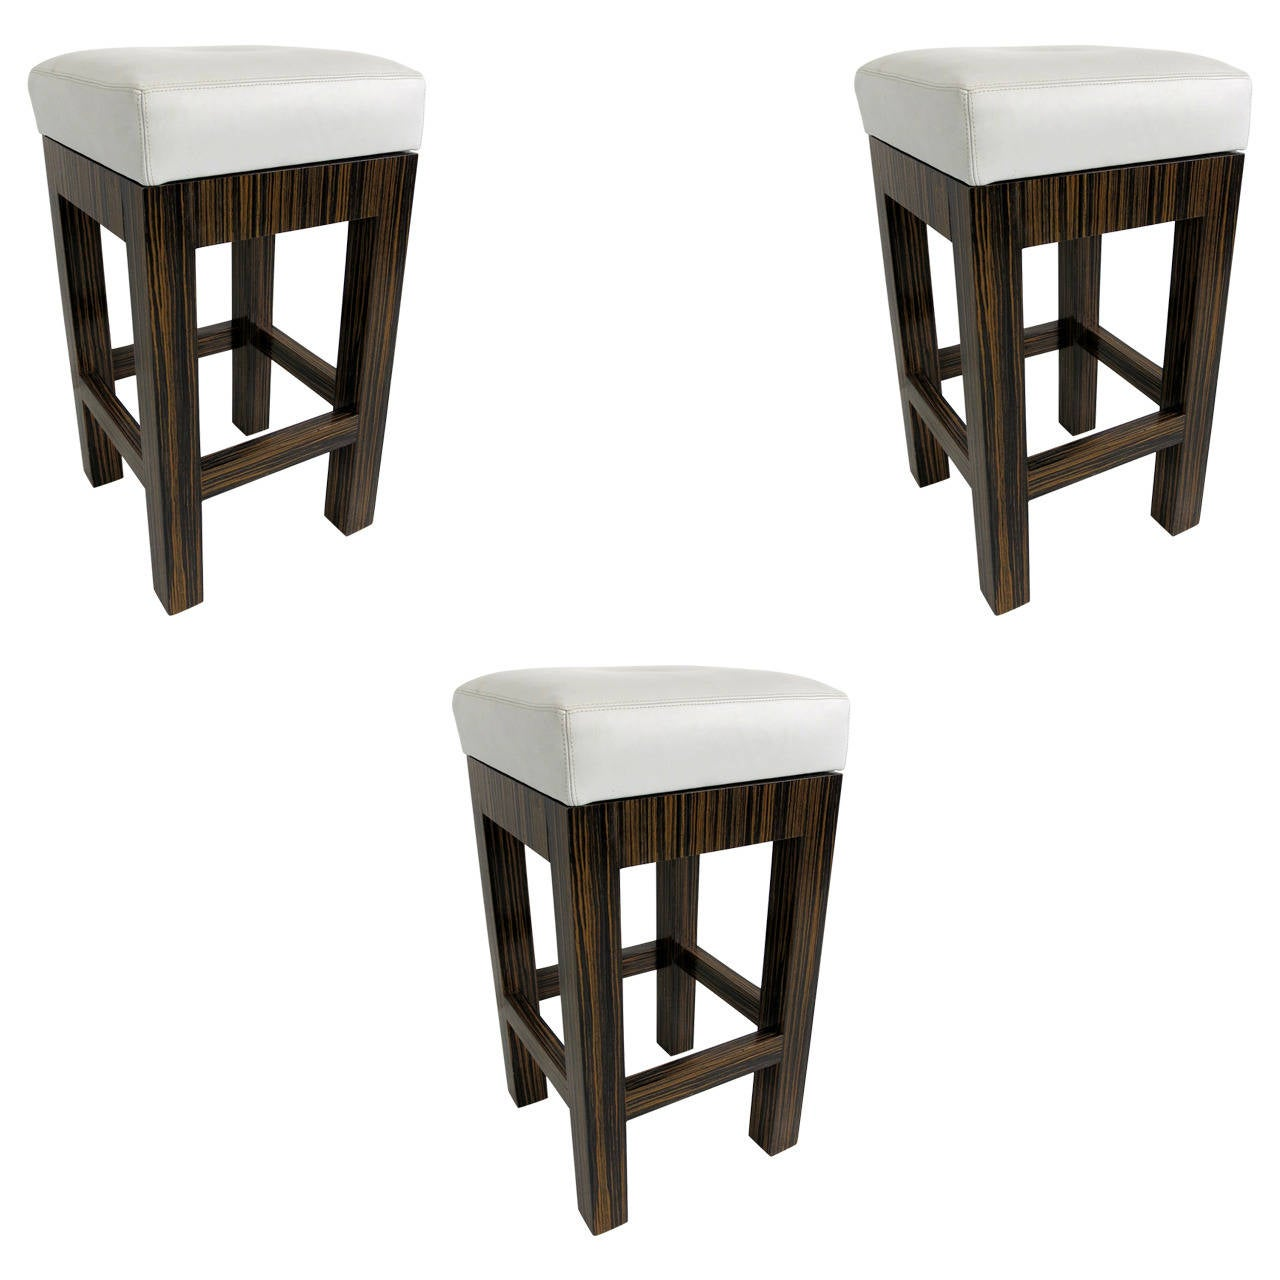 Set Of Three Macassar Ebony Swiveling Bar Stools With